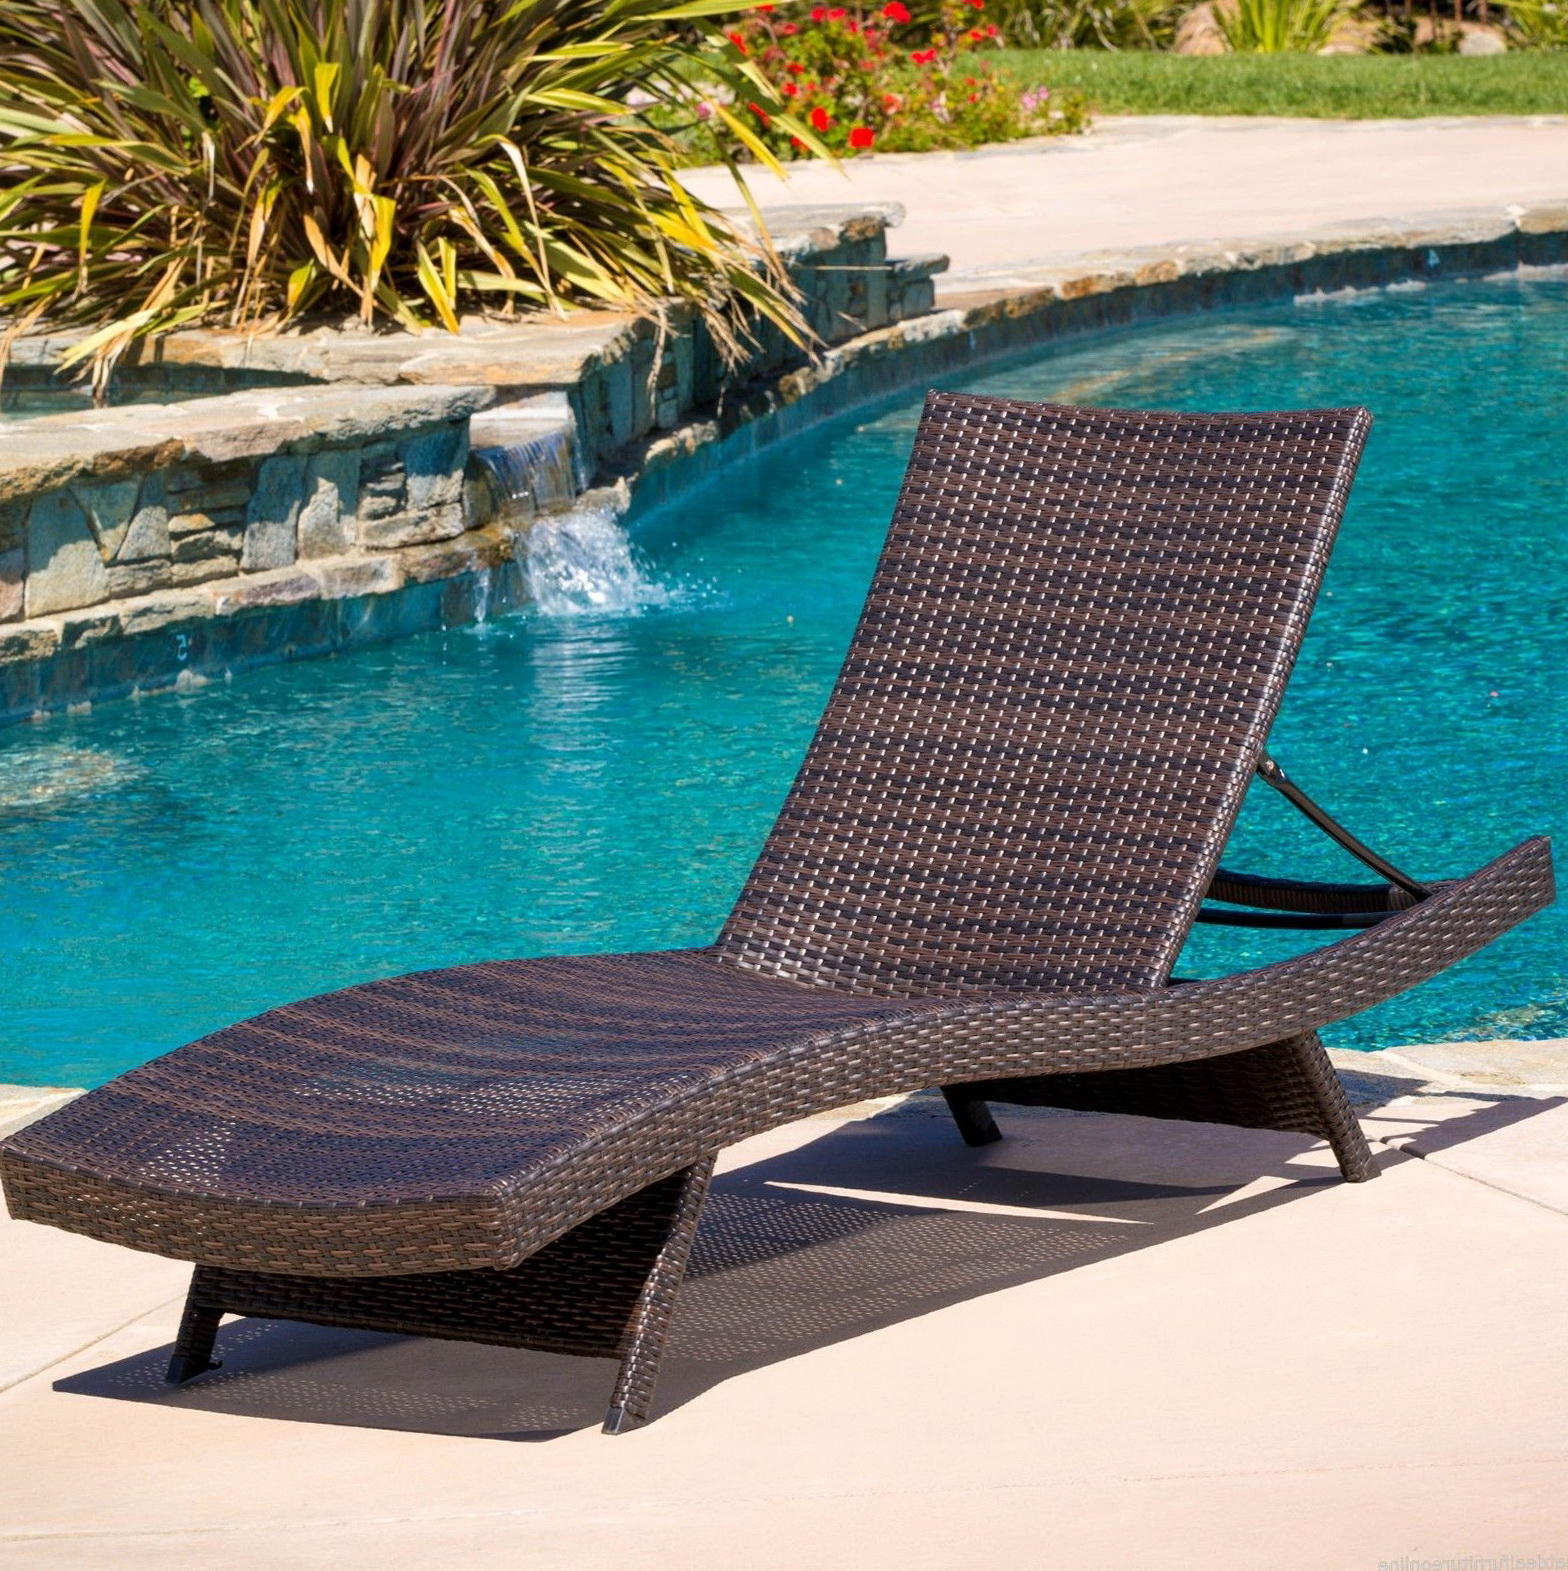 Swimming Pool Deck Chairs